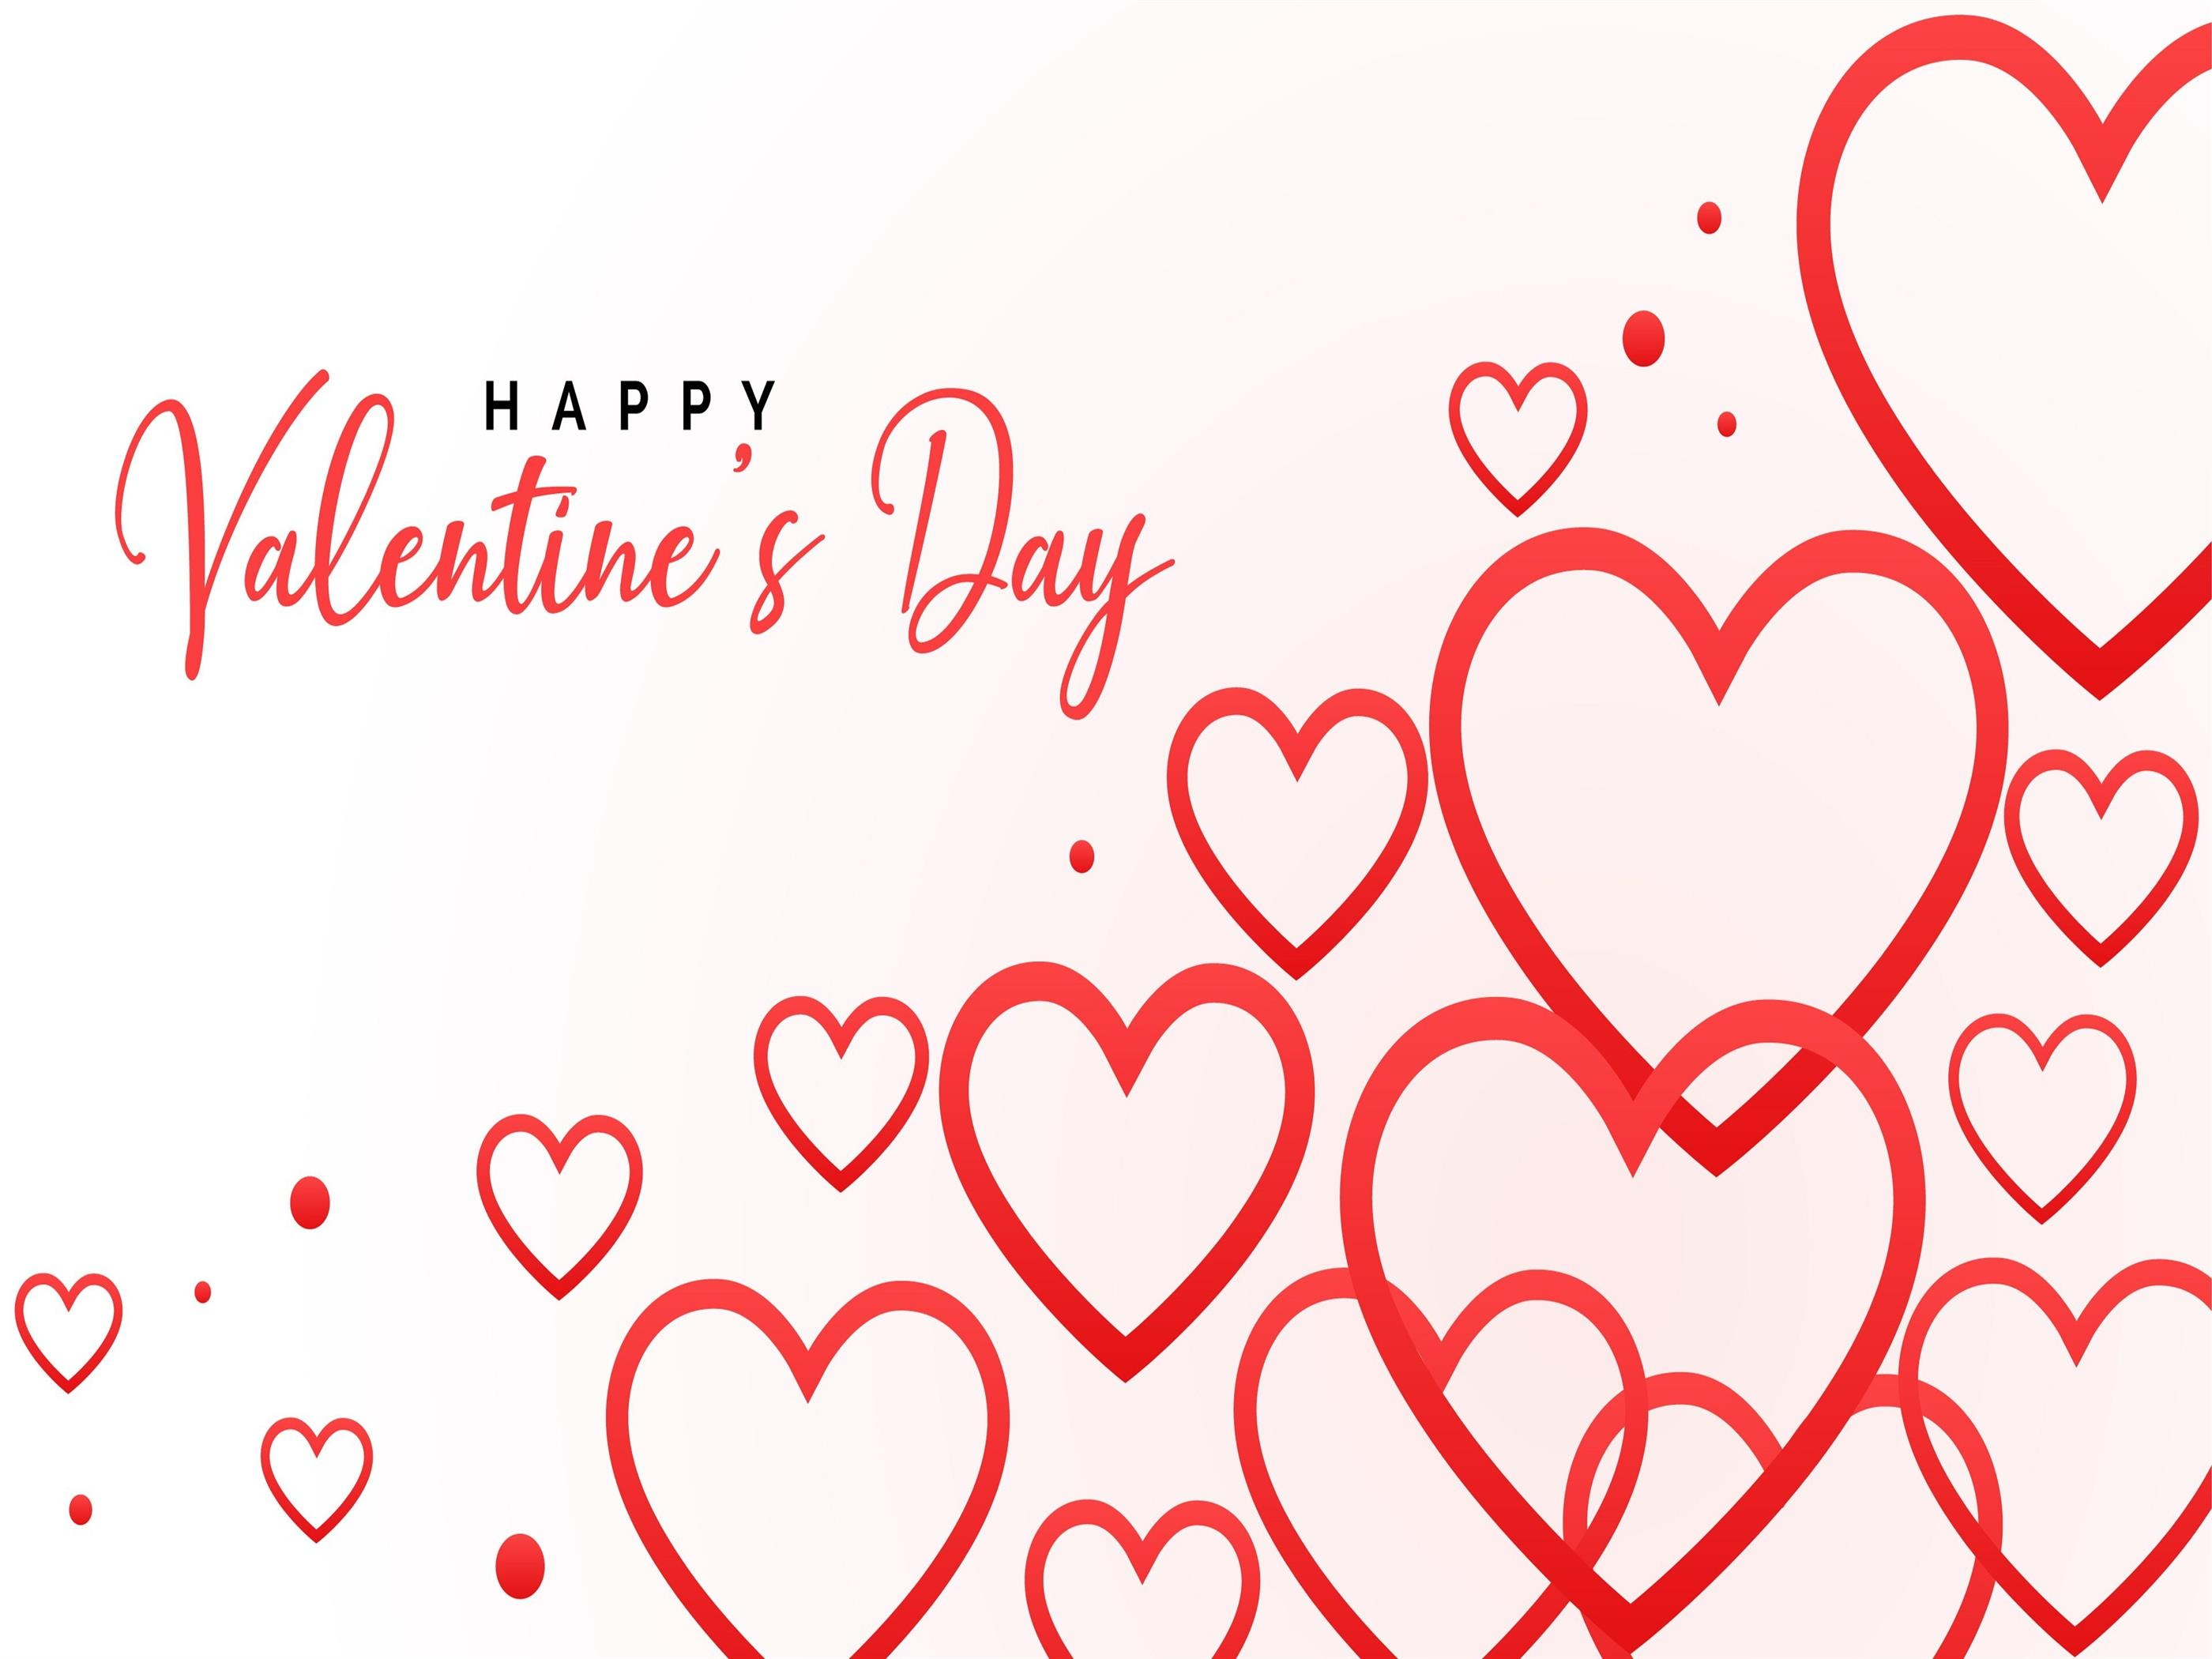 2800x2100 Valentine Day Photo with Red Heart Wallpaper